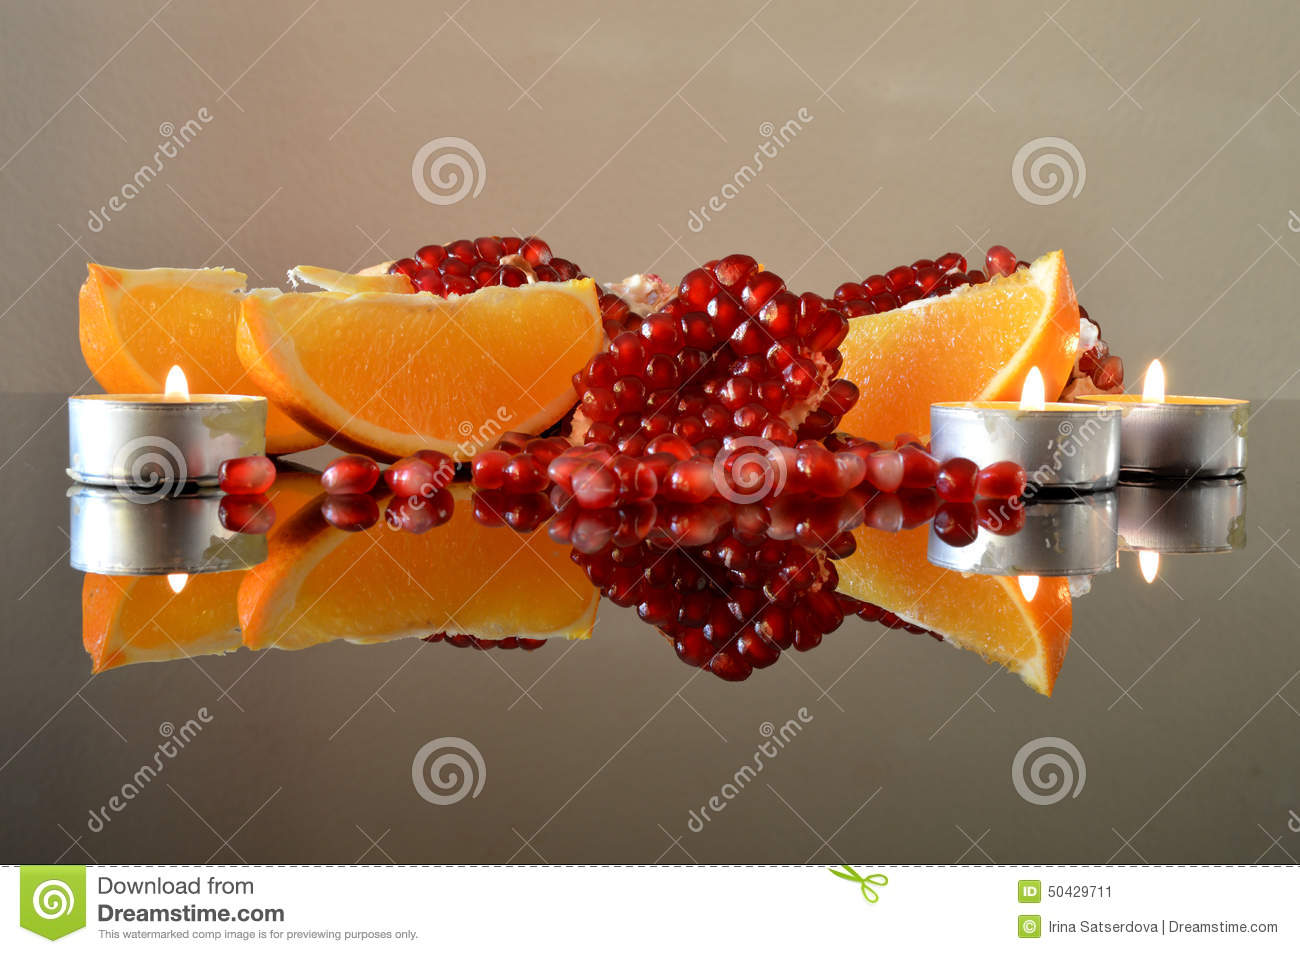 pieces-pomegranate-orange-wedges-candles-segments-glass-surface ...